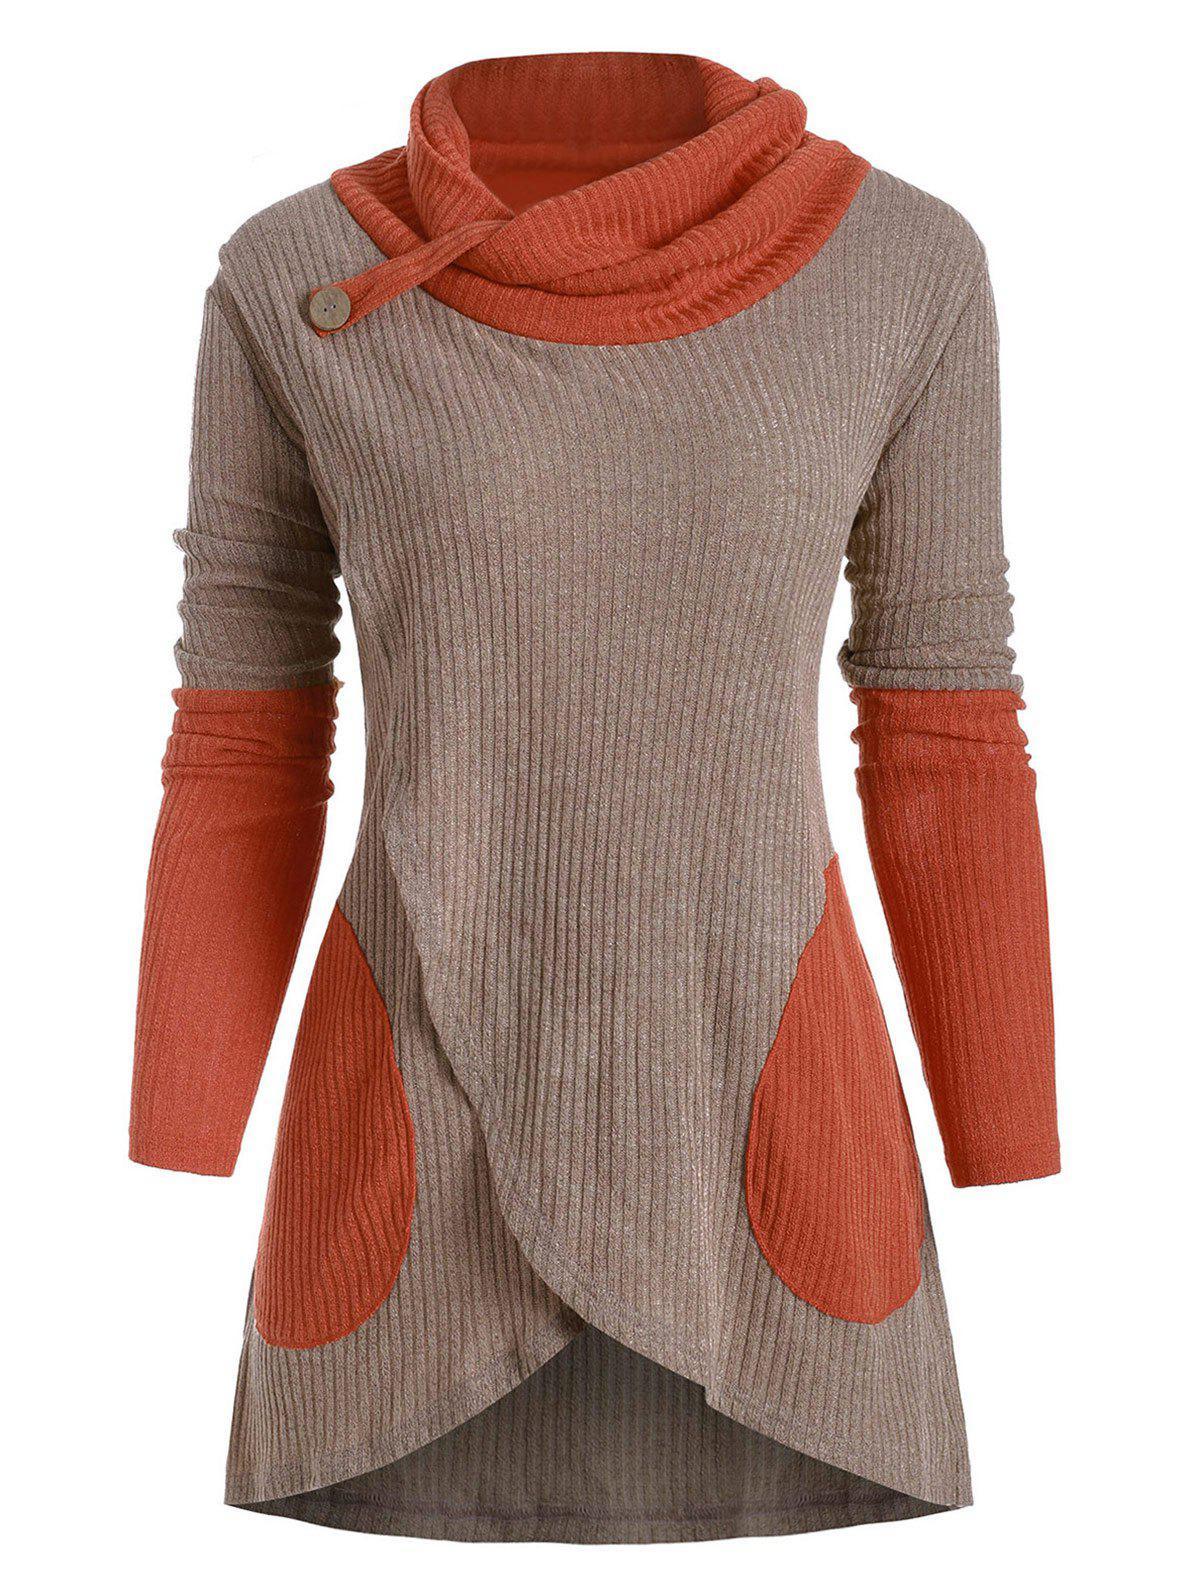 Cheap Colorblock Cowl Neck Overlap Long Sleeves Knitwear